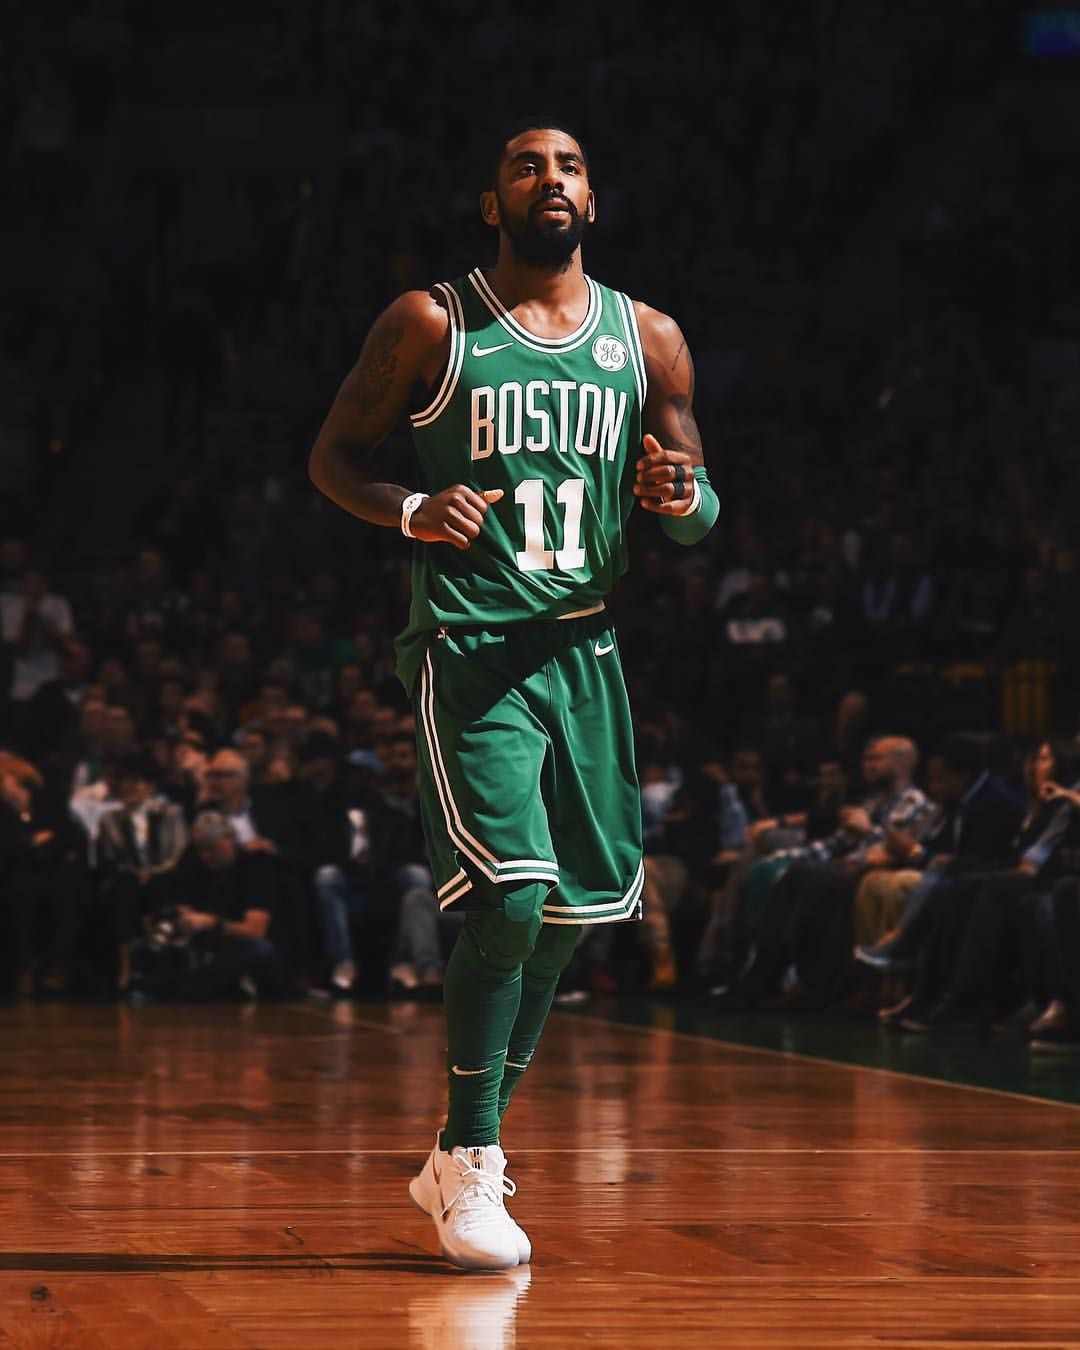 Describe Kyrie Irving in 1 word. Via Tags: